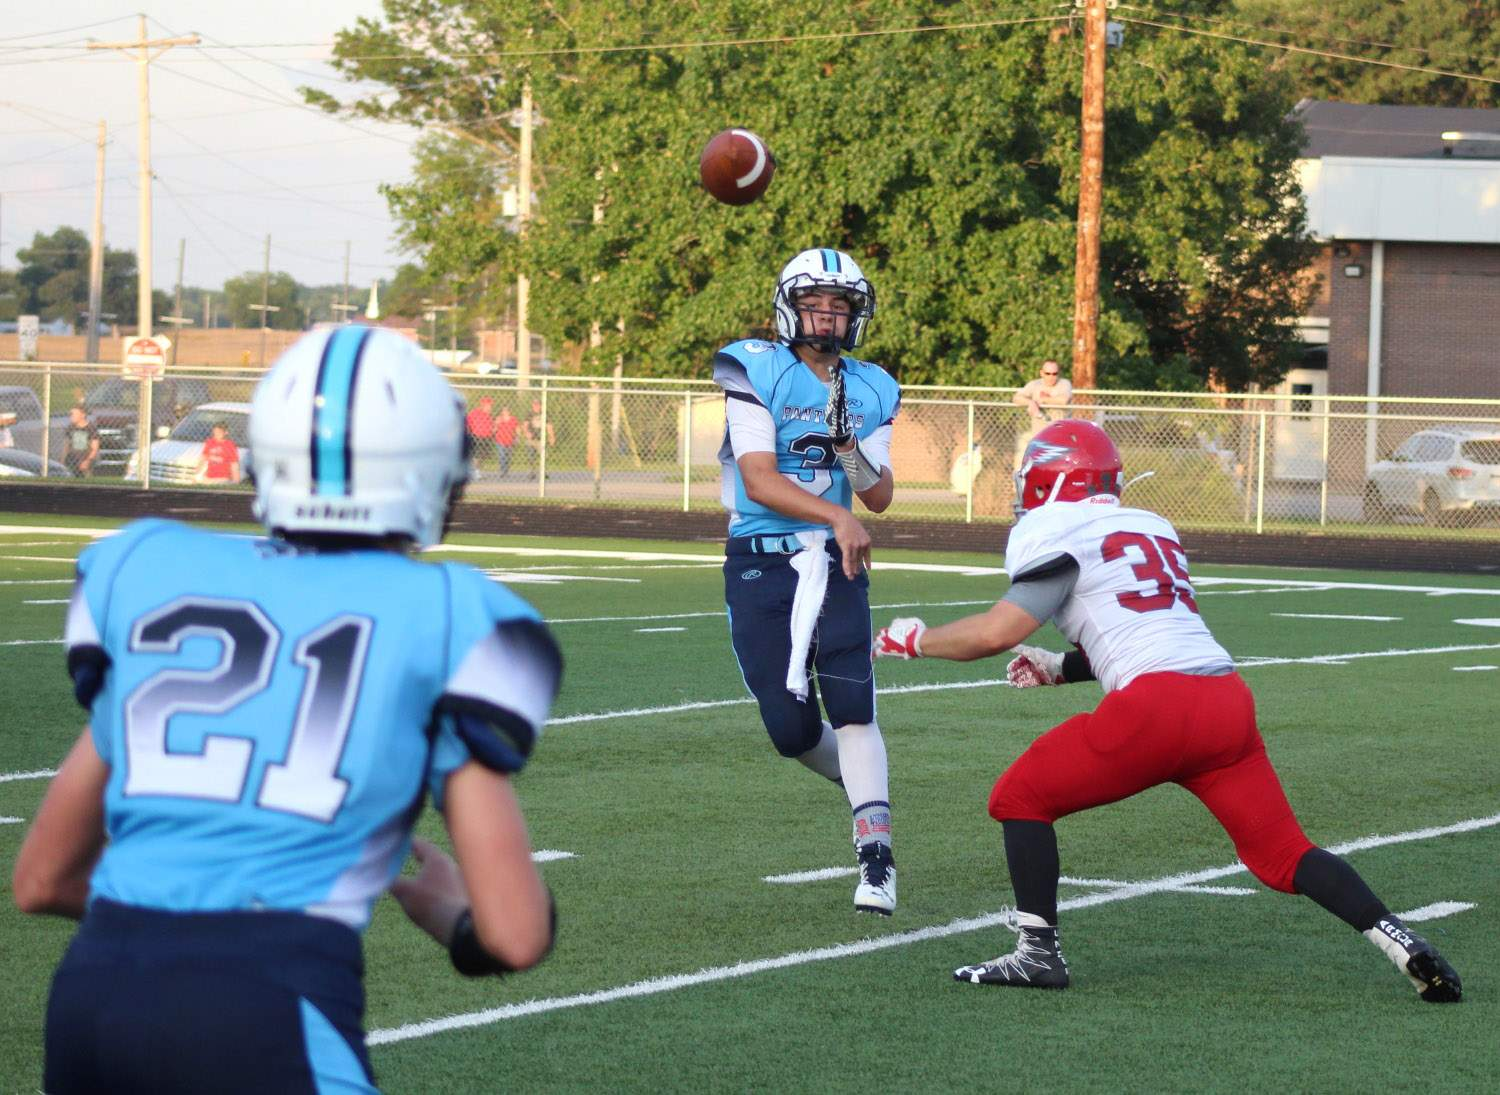 Hunter Riggins completes a pass on the first play from scrimmage Friday night.